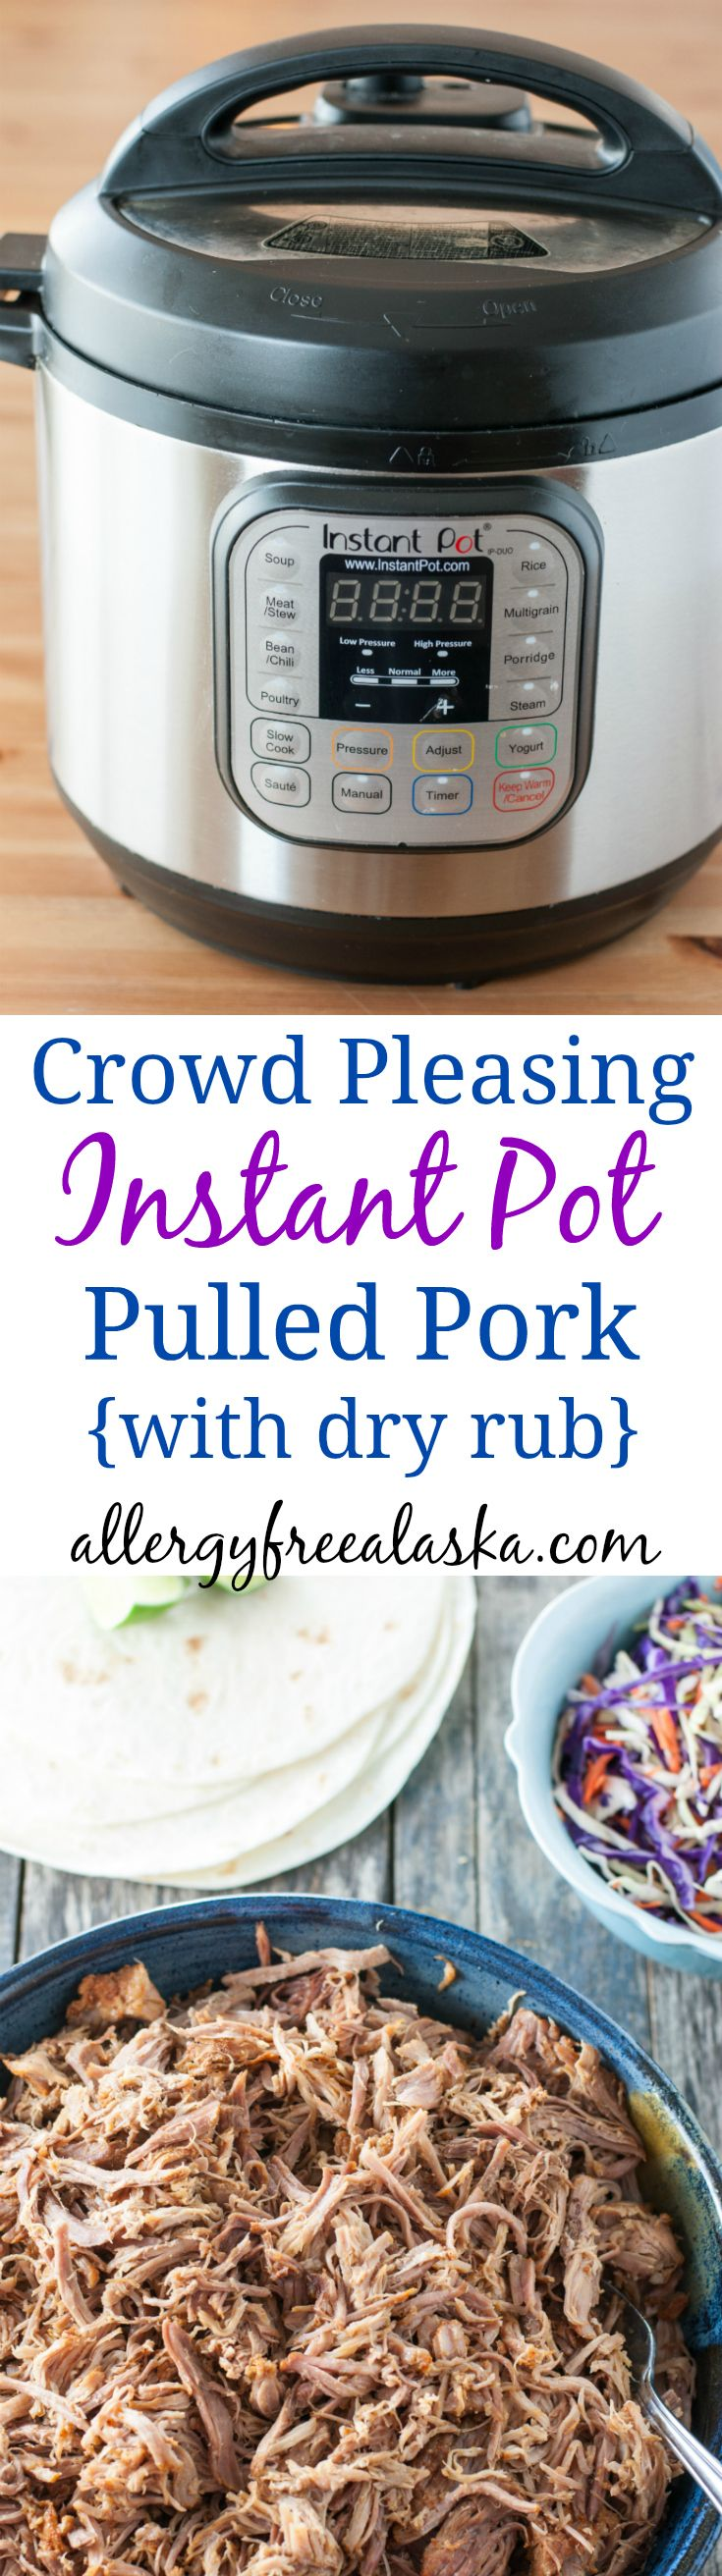 Crowd-pleasing Instant Pot pressure cooker Pulled Pork with Dry Rub (Paleo, Gluten-Free)